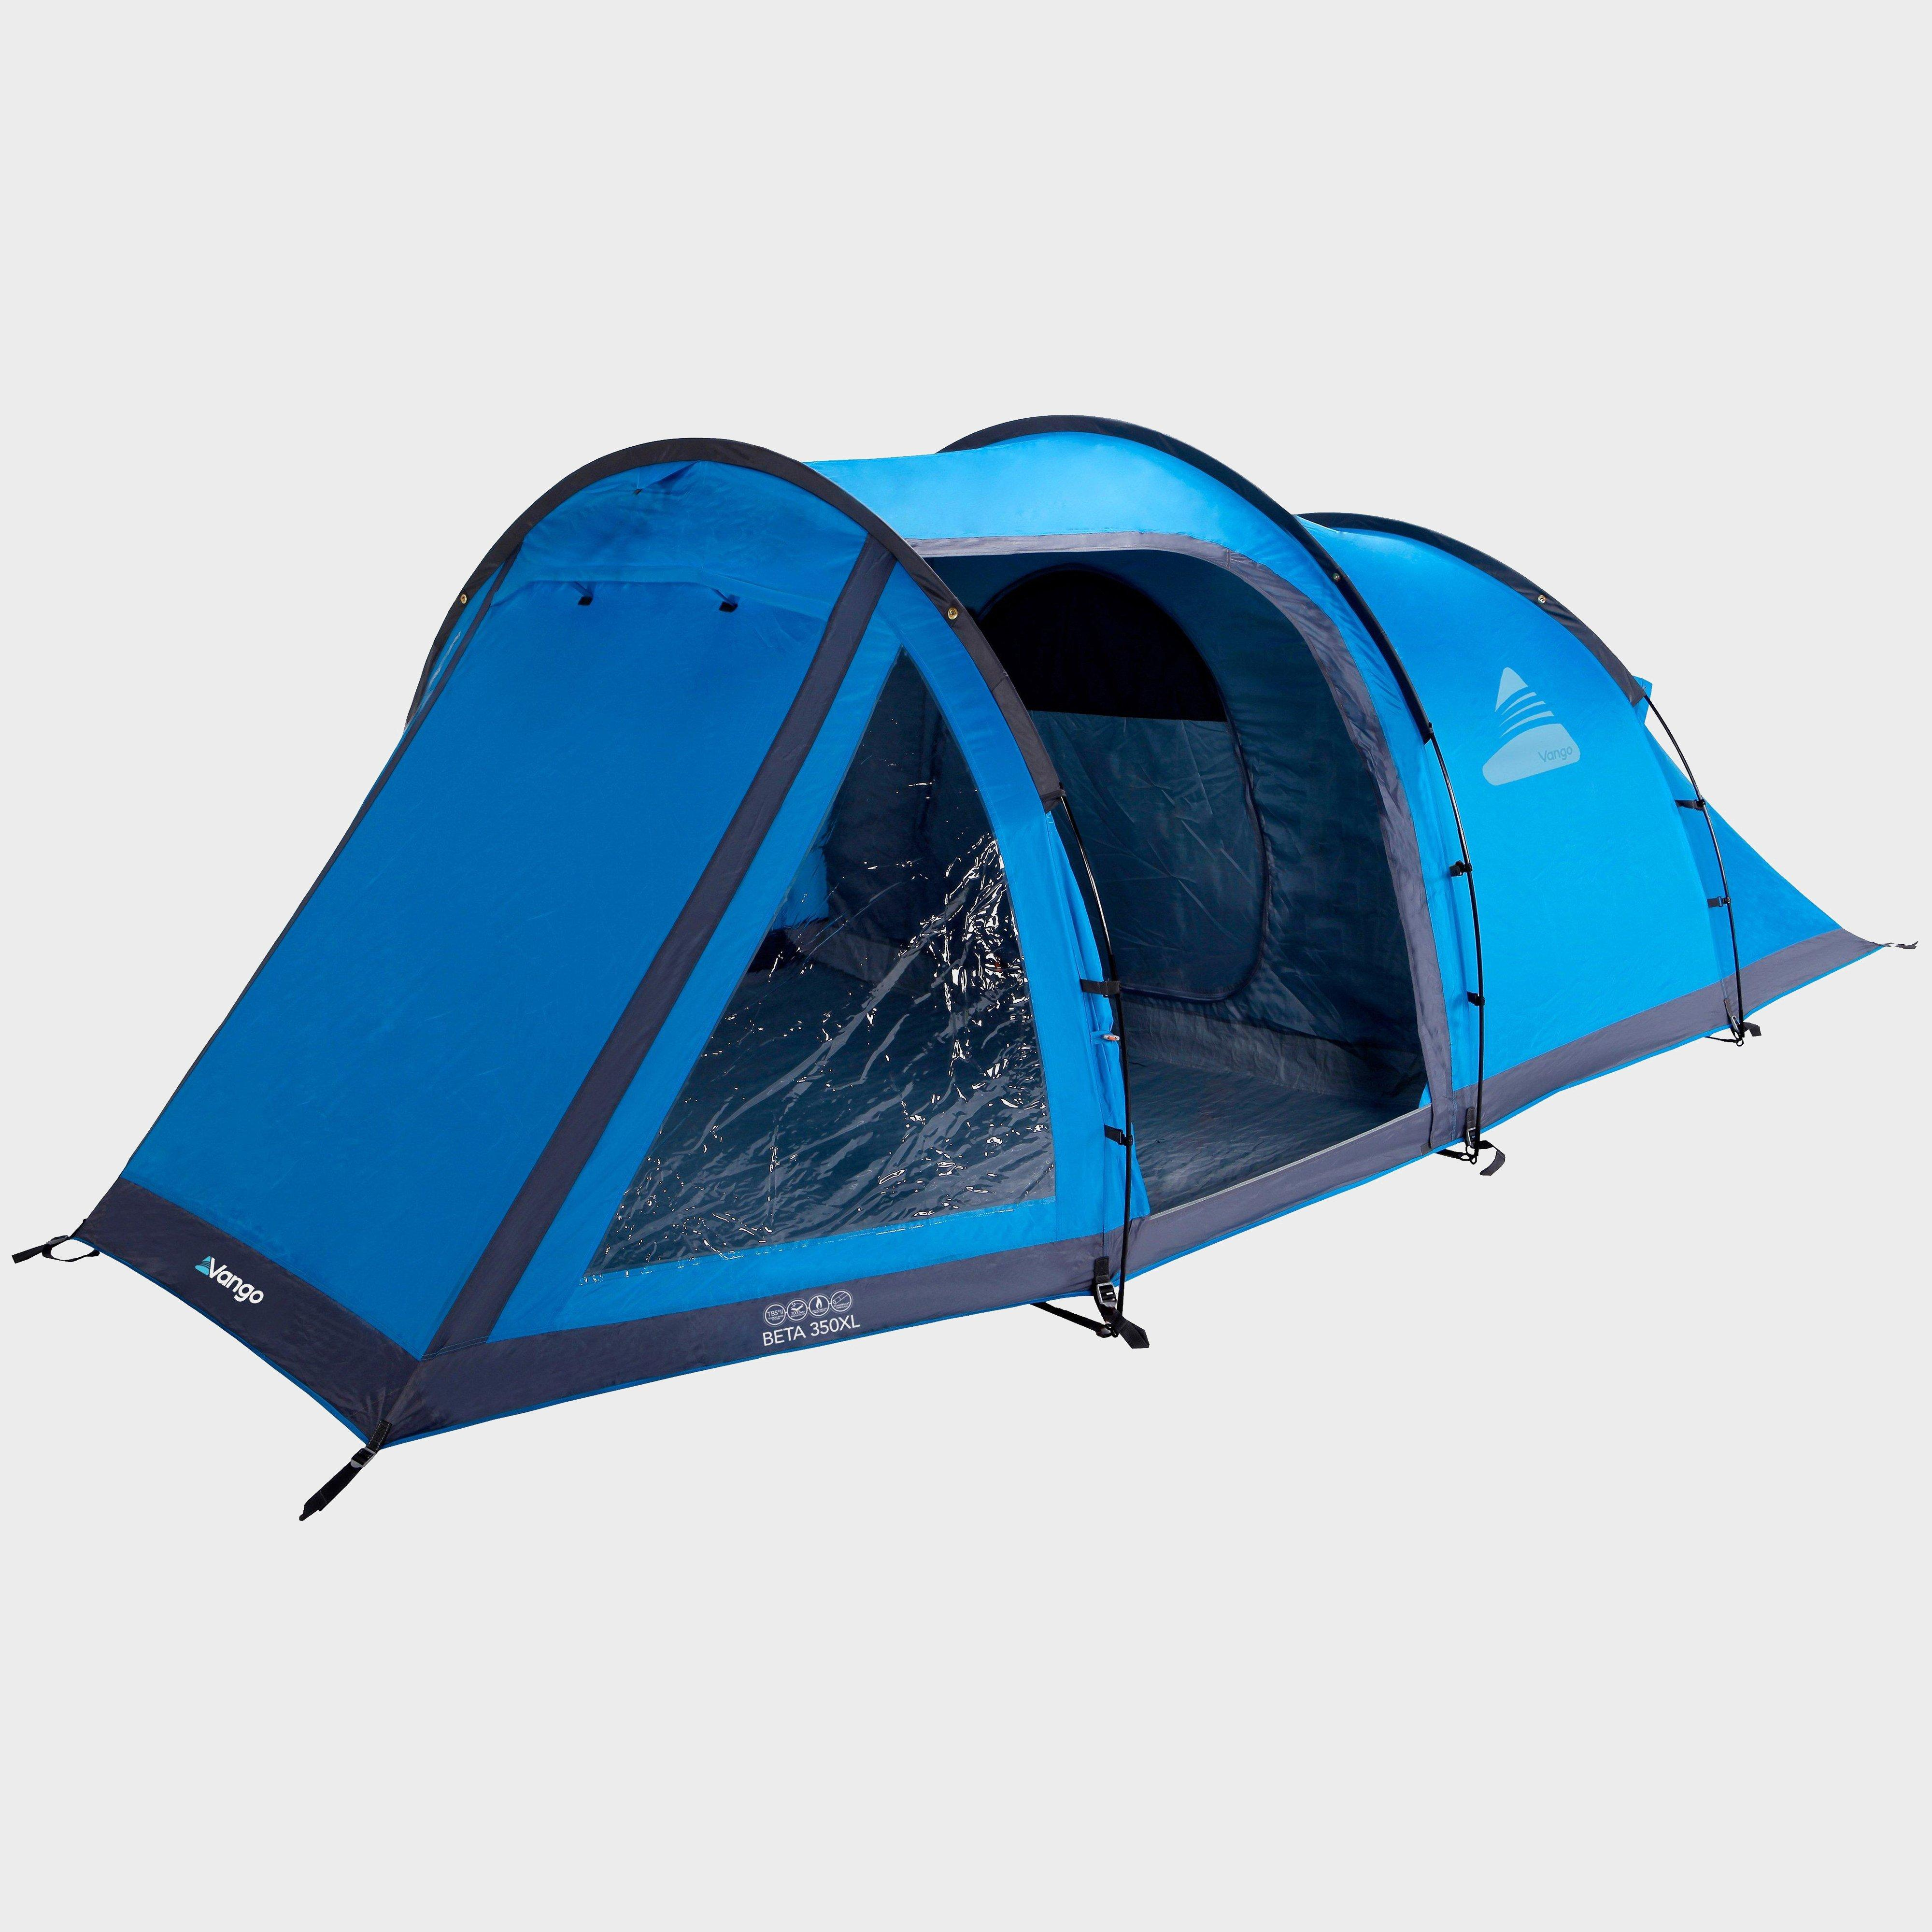 Oztrail Dome Tent Genesis 3 Man Cing Animal Gear & 3 Man Dome Tent - Best Tent 2018